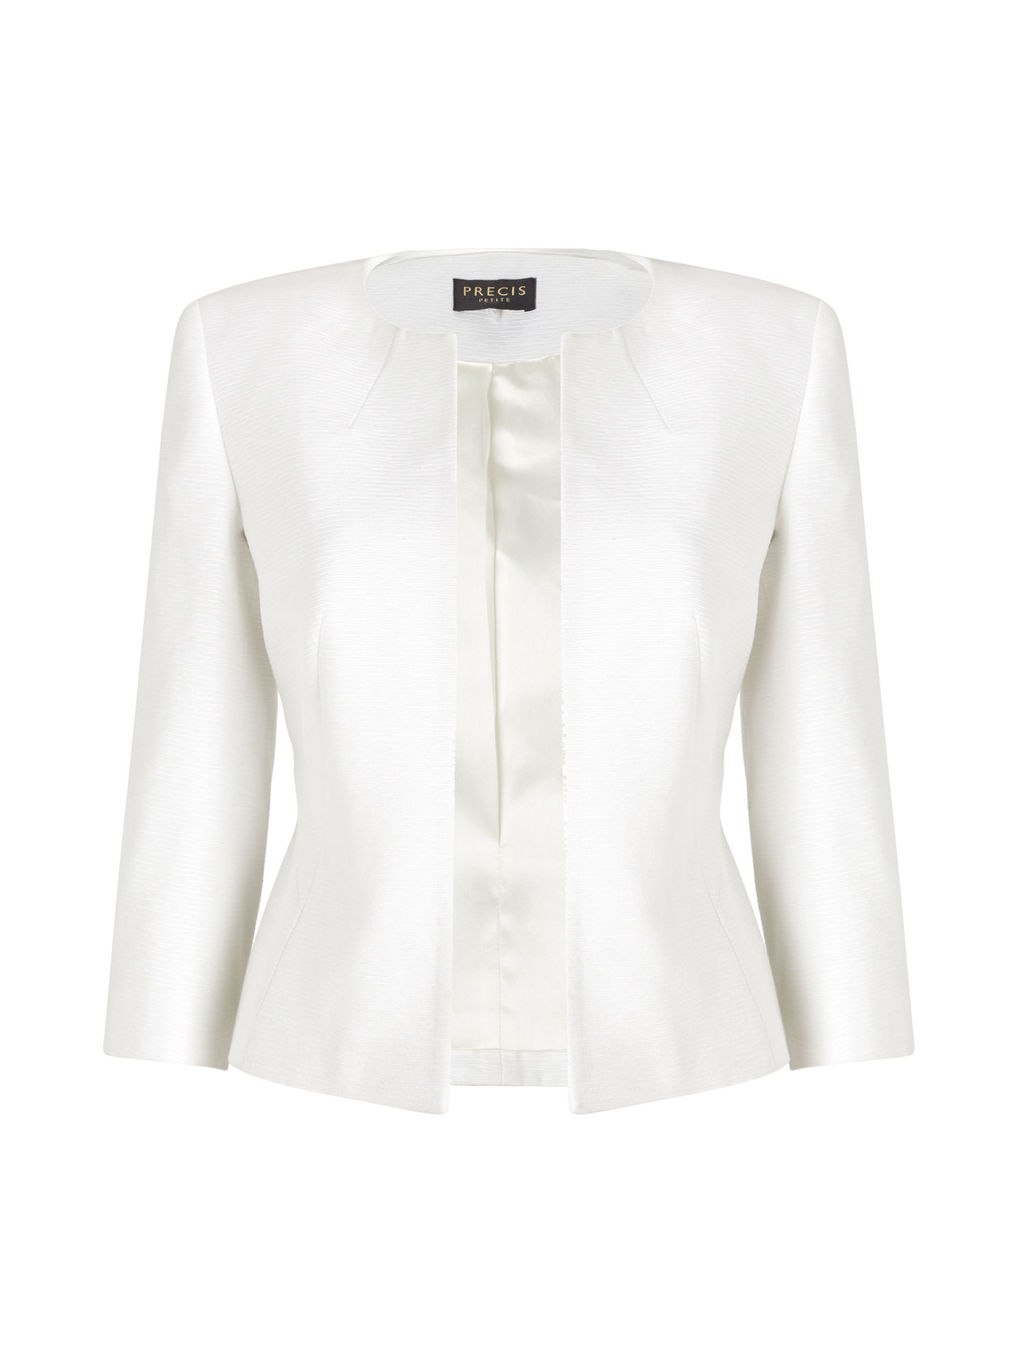 Ivory Textured Jacket - pattern: plain; style: single breasted blazer; collar: round collar/collarless; predominant colour: white; occasions: evening, occasion; length: standard; fit: tailored/fitted; fibres: polyester/polyamide - mix; sleeve length: 3/4 length; sleeve style: standard; texture group: structured shiny - satin/tafetta/silk etc.; collar break: high; pattern type: fabric; season: s/s 2016; wardrobe: event